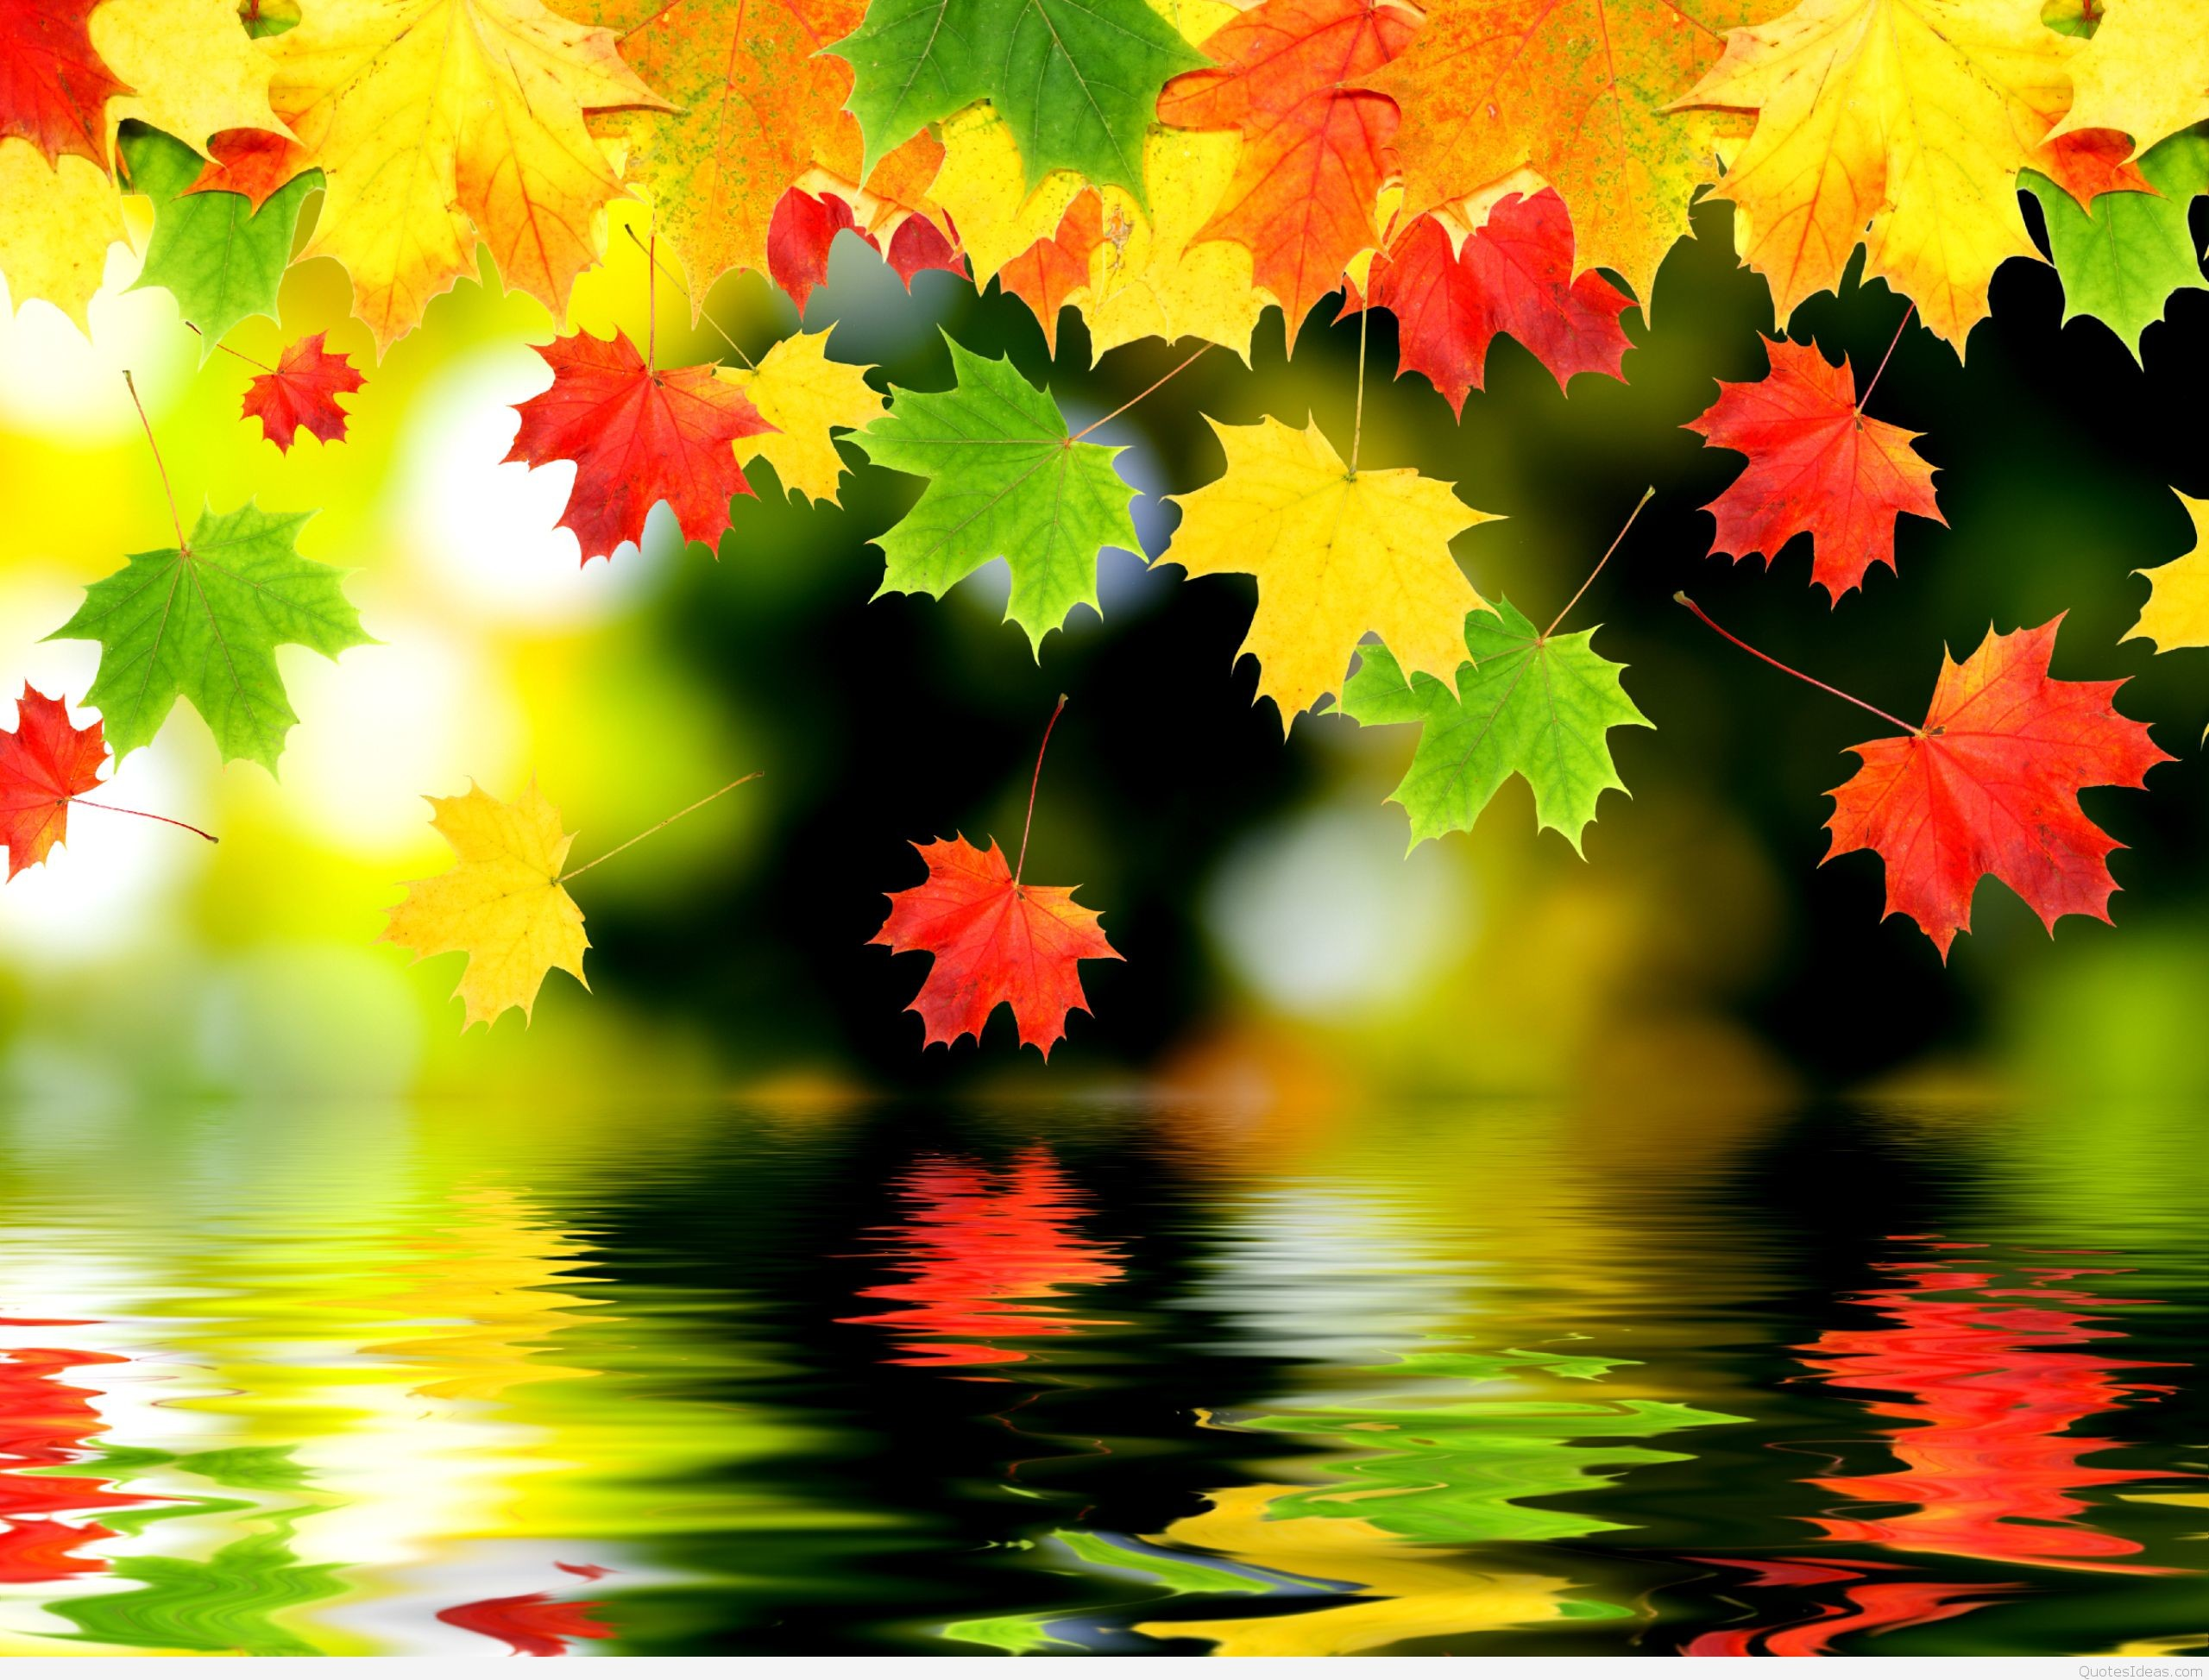 Autumn Wallpapers HD Desktop Backgrounds Images and Pictures